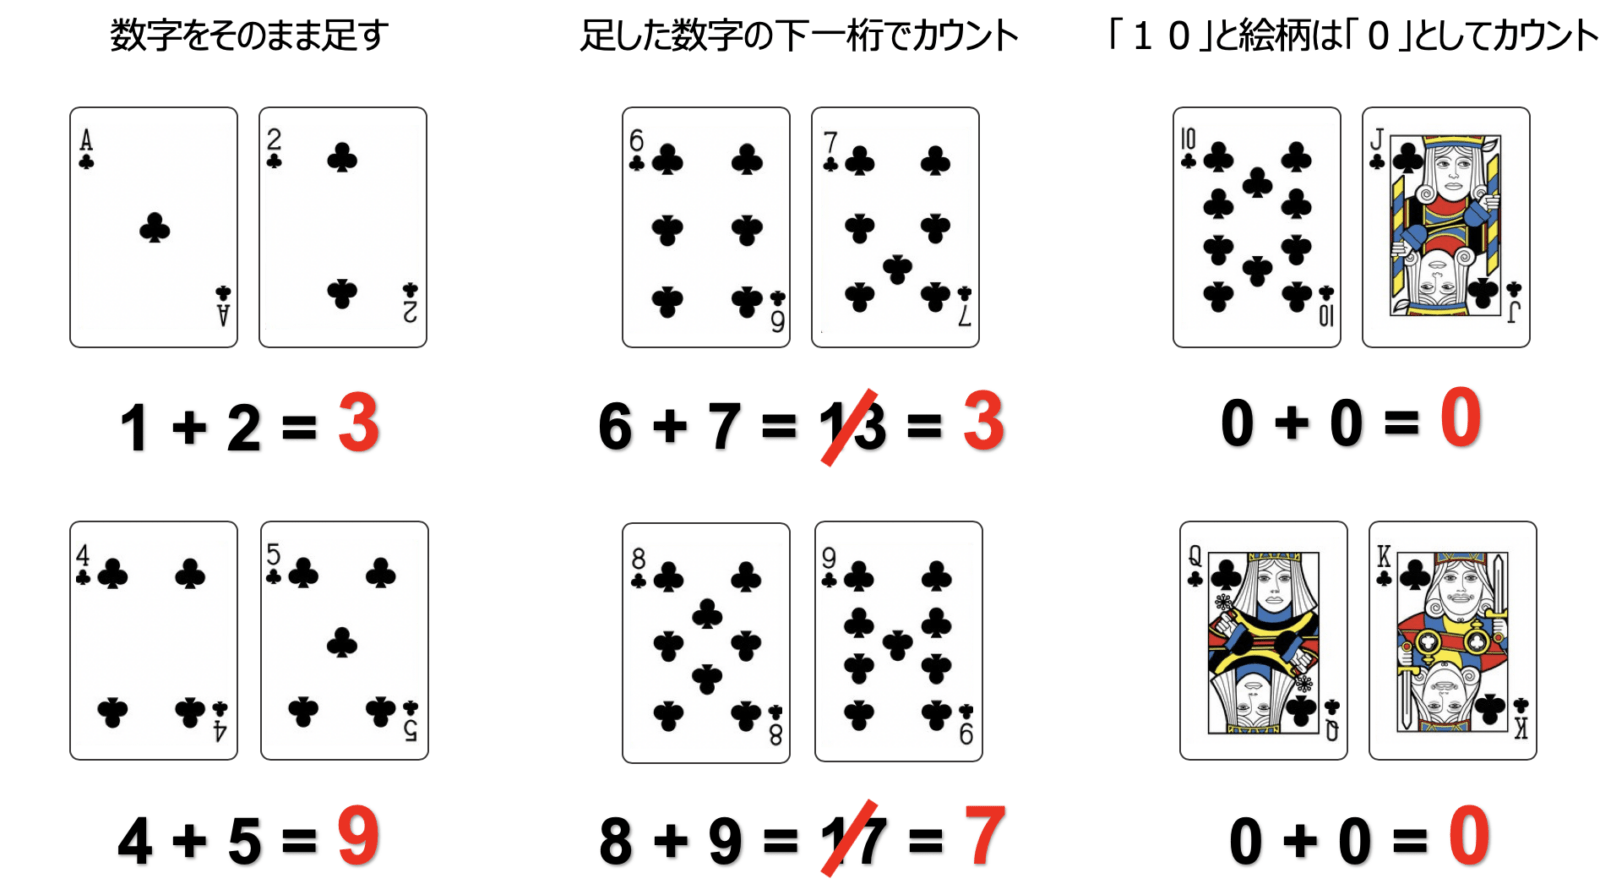 baccarat rules3